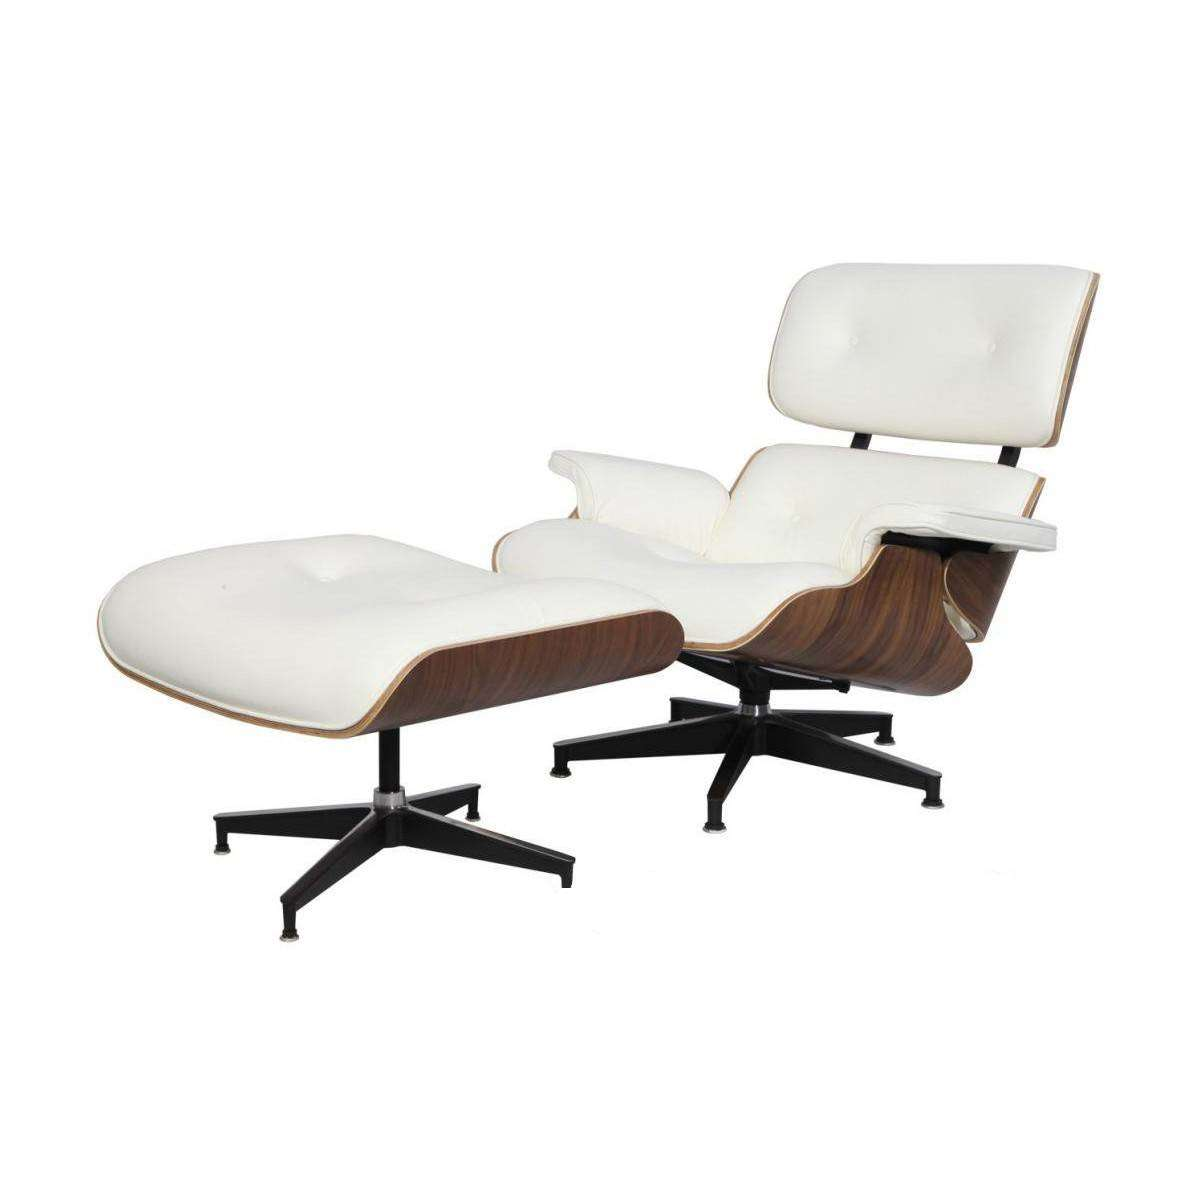 MOD Lounge Chair & Ottoman White Walnut